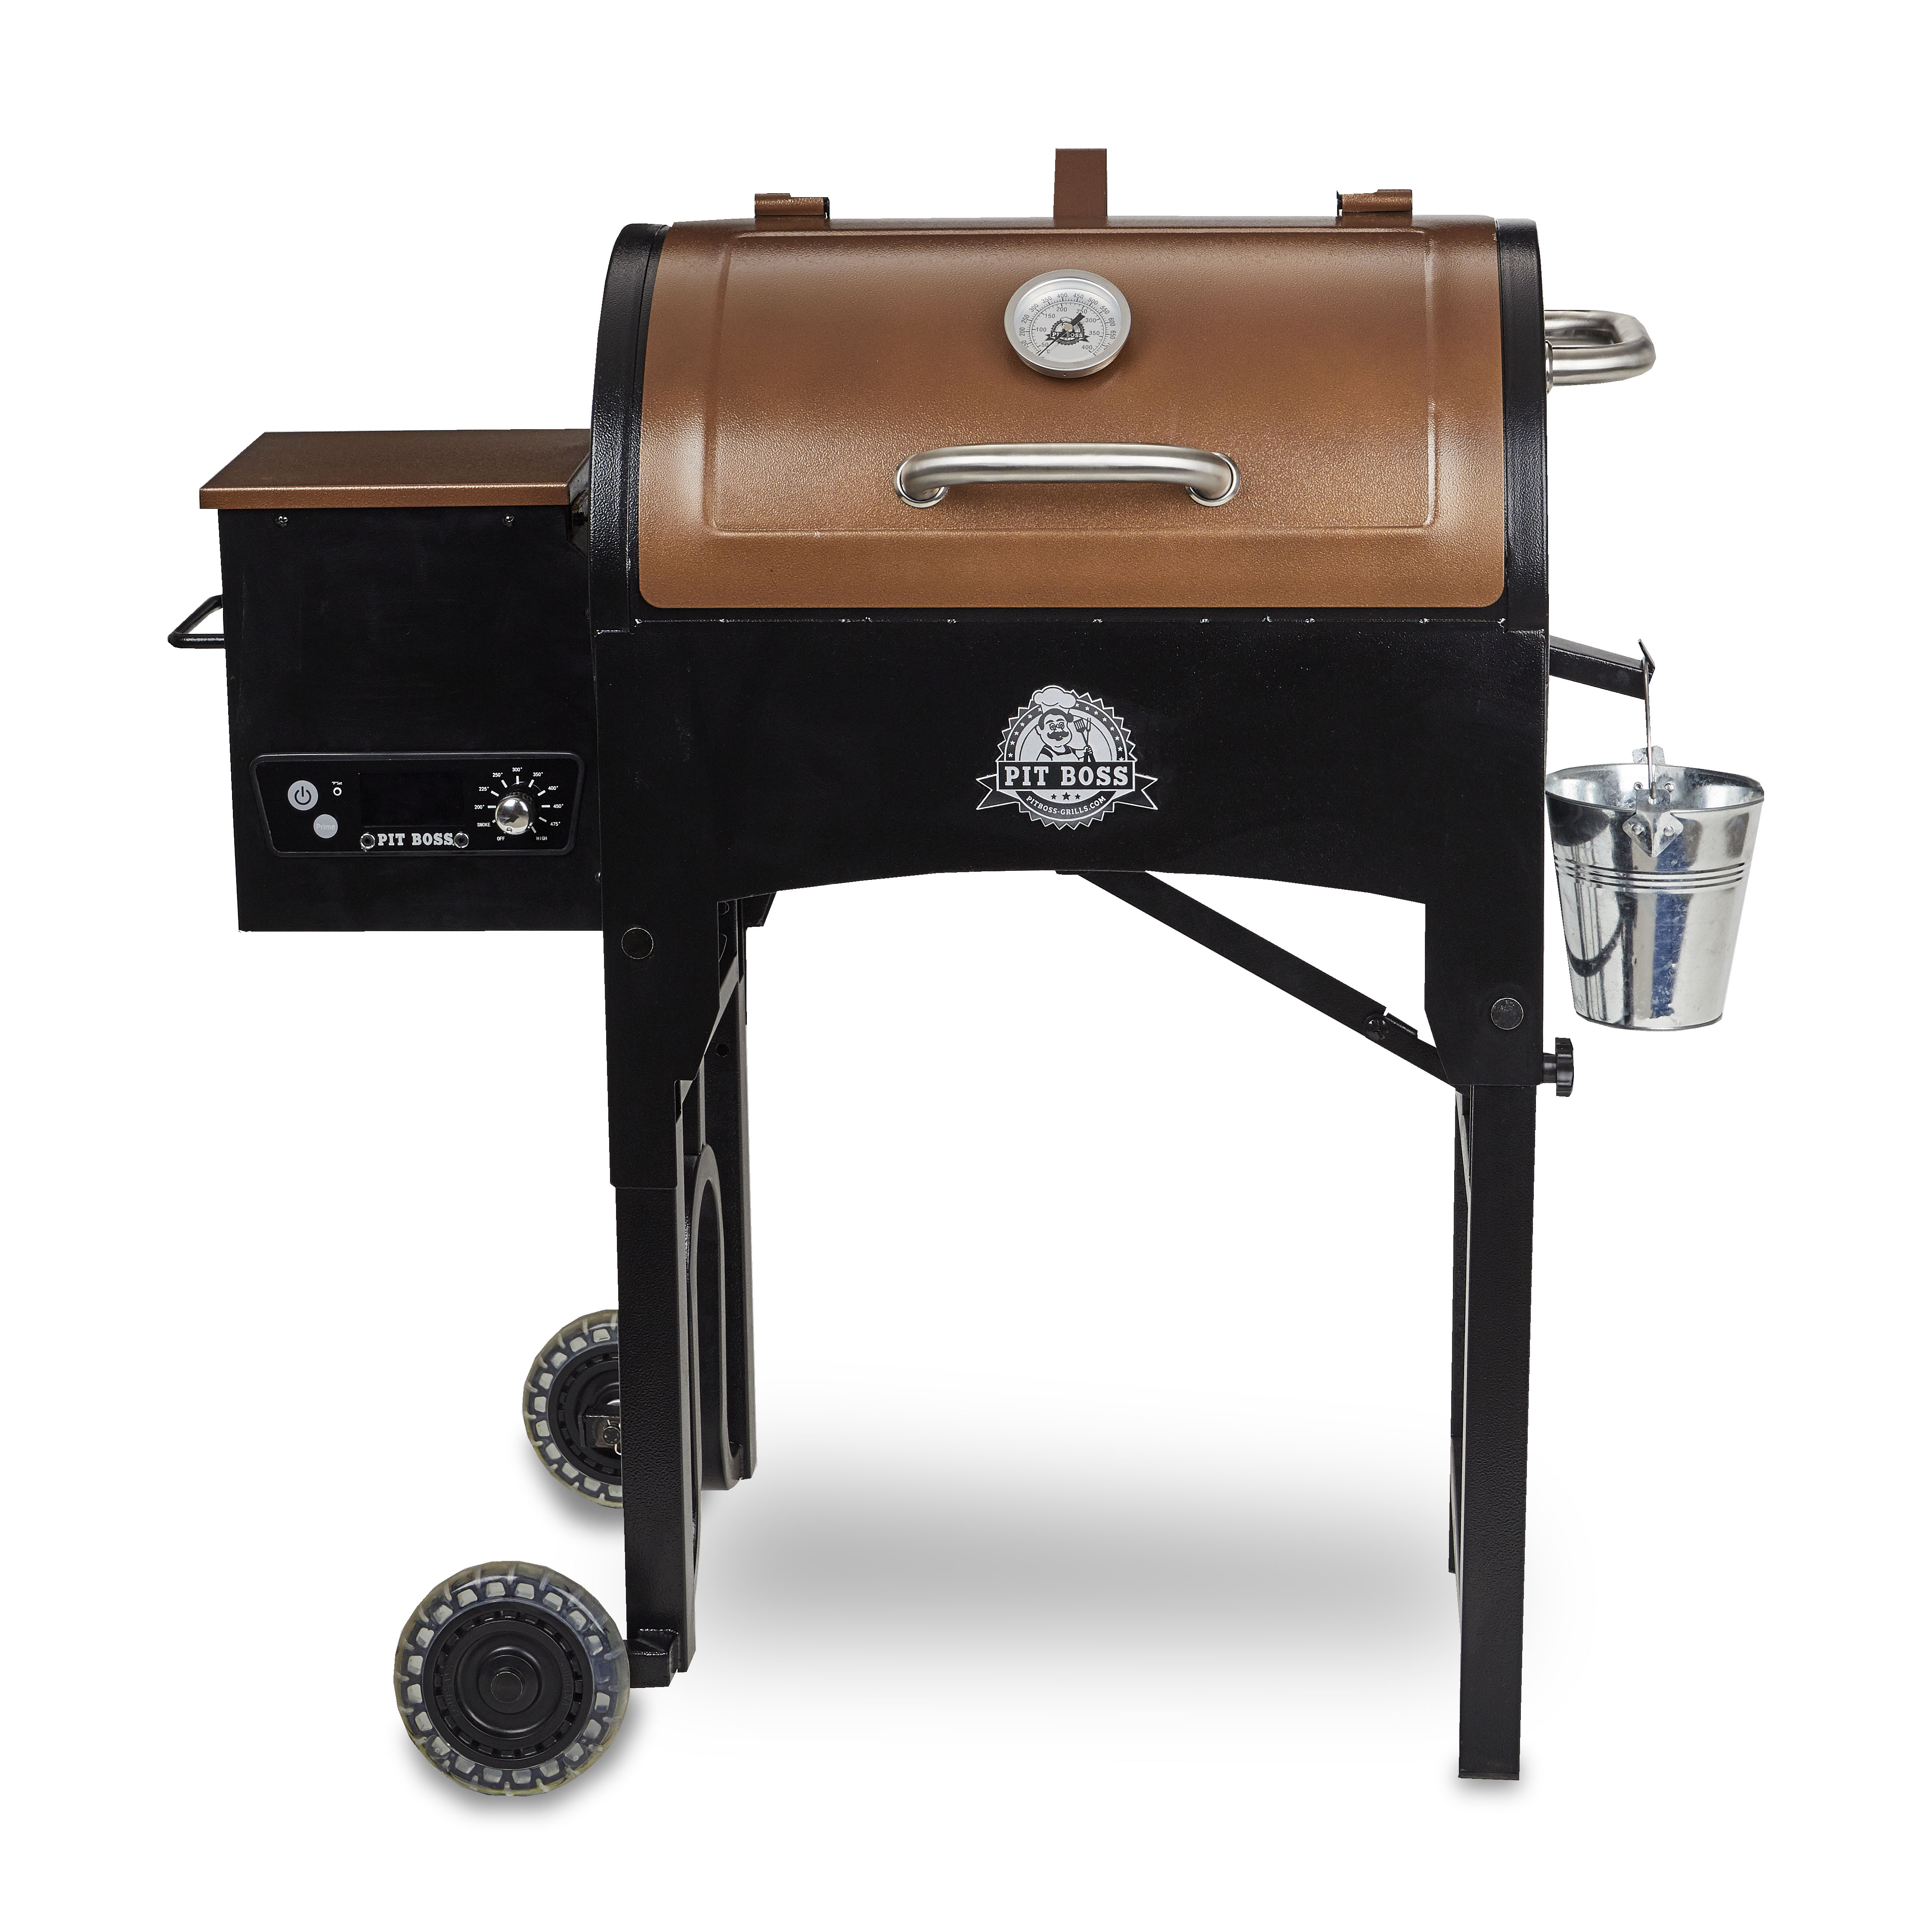 Pit Boss 340 sq. in. Portable Tailgate/Camp Pellet Grill w/ Folding Legs